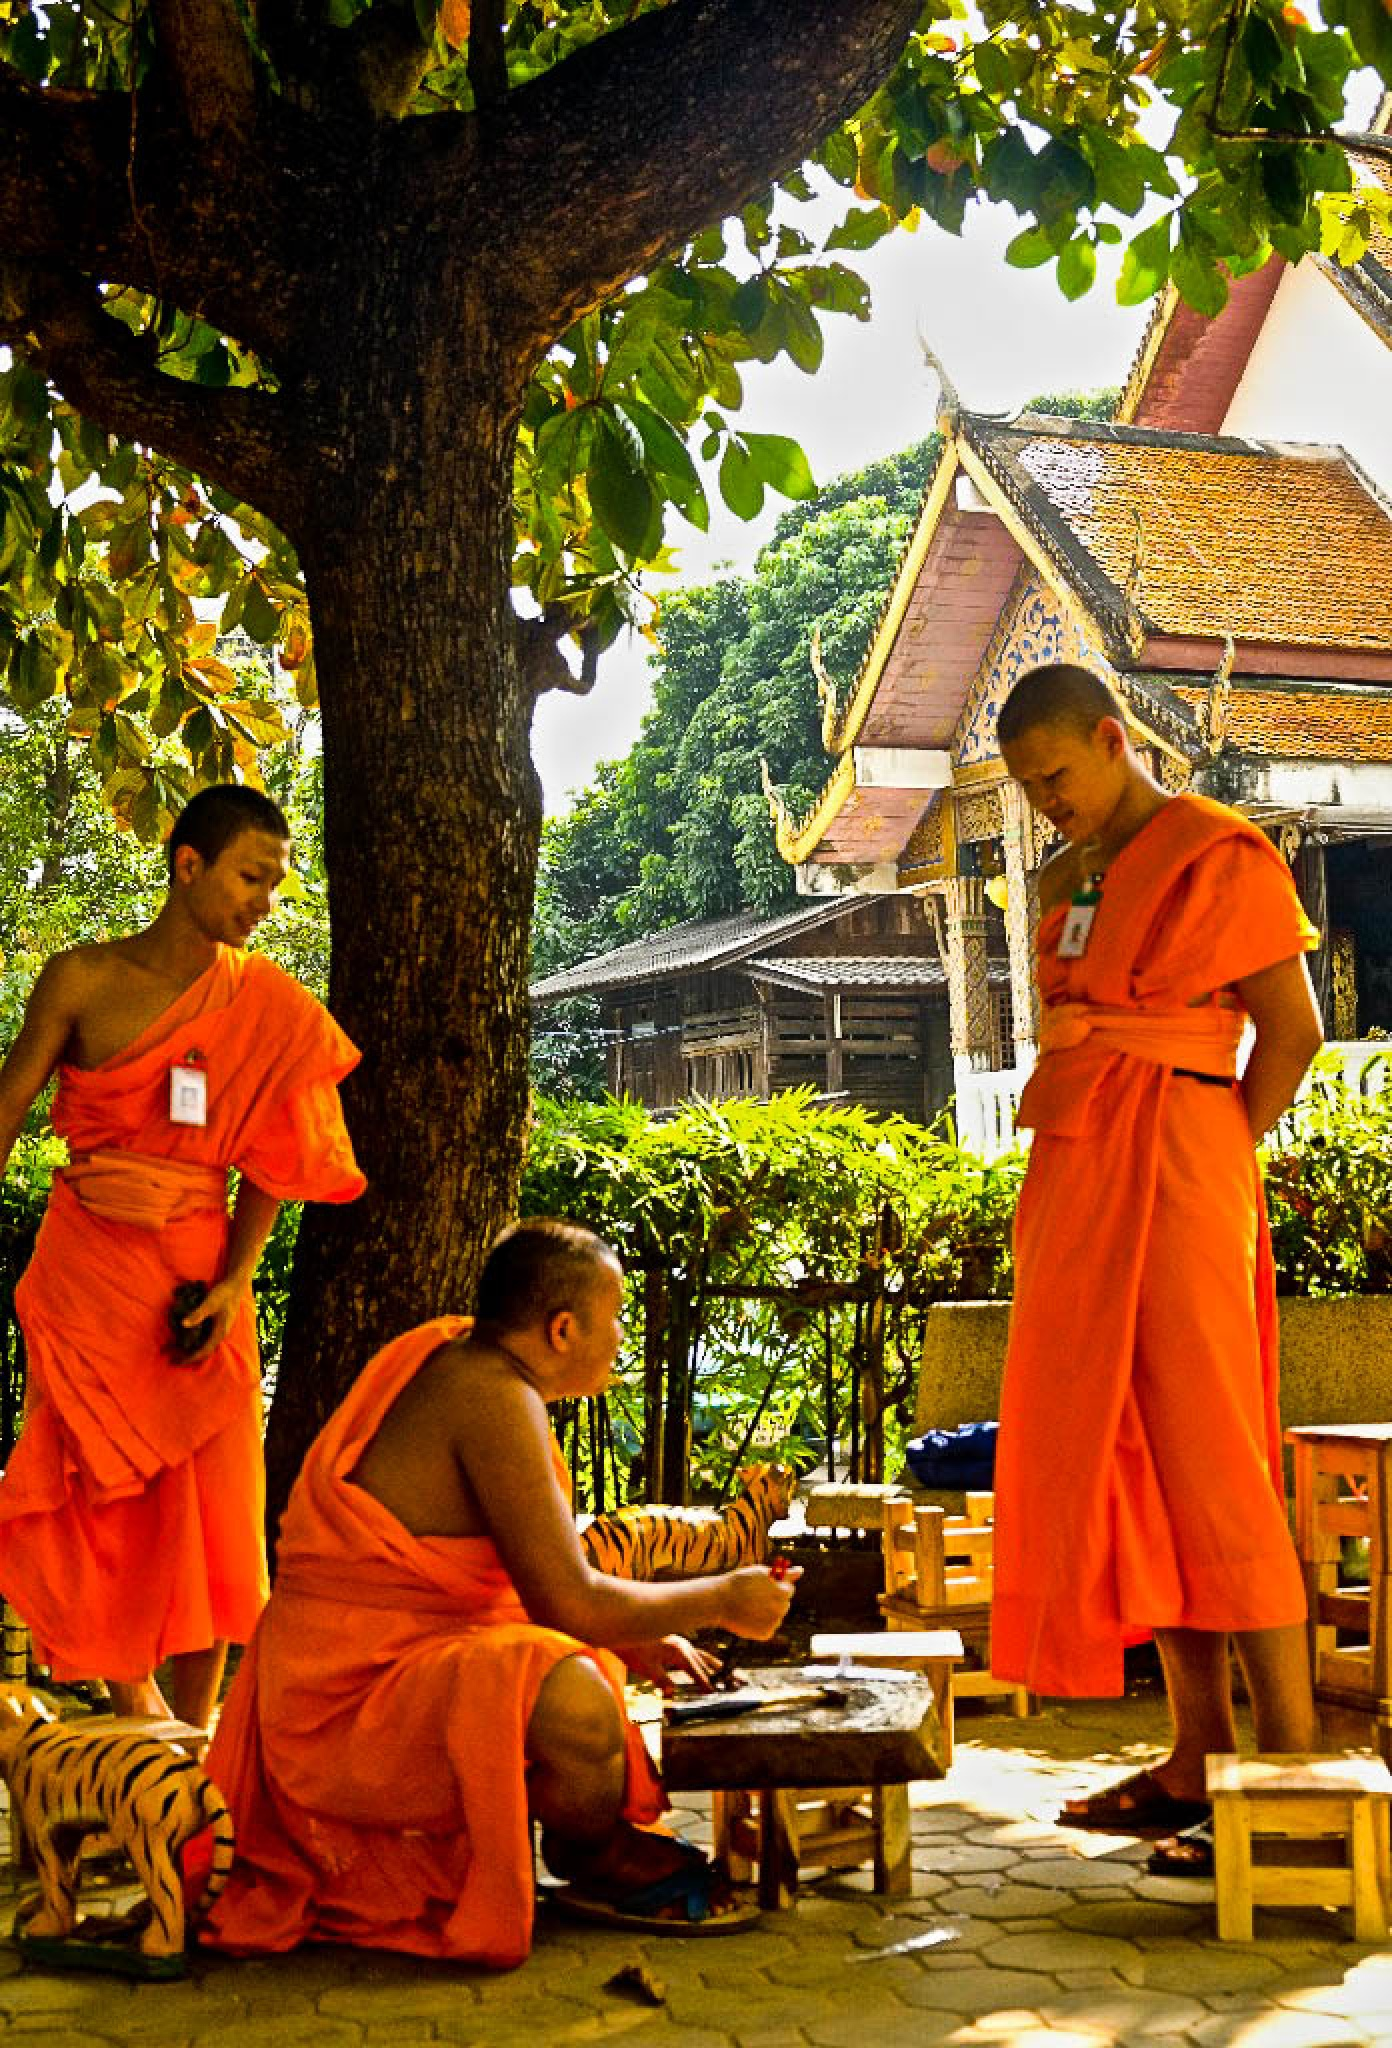 Monks at Work, Chiang Mai, Thailand by JohnMilligan